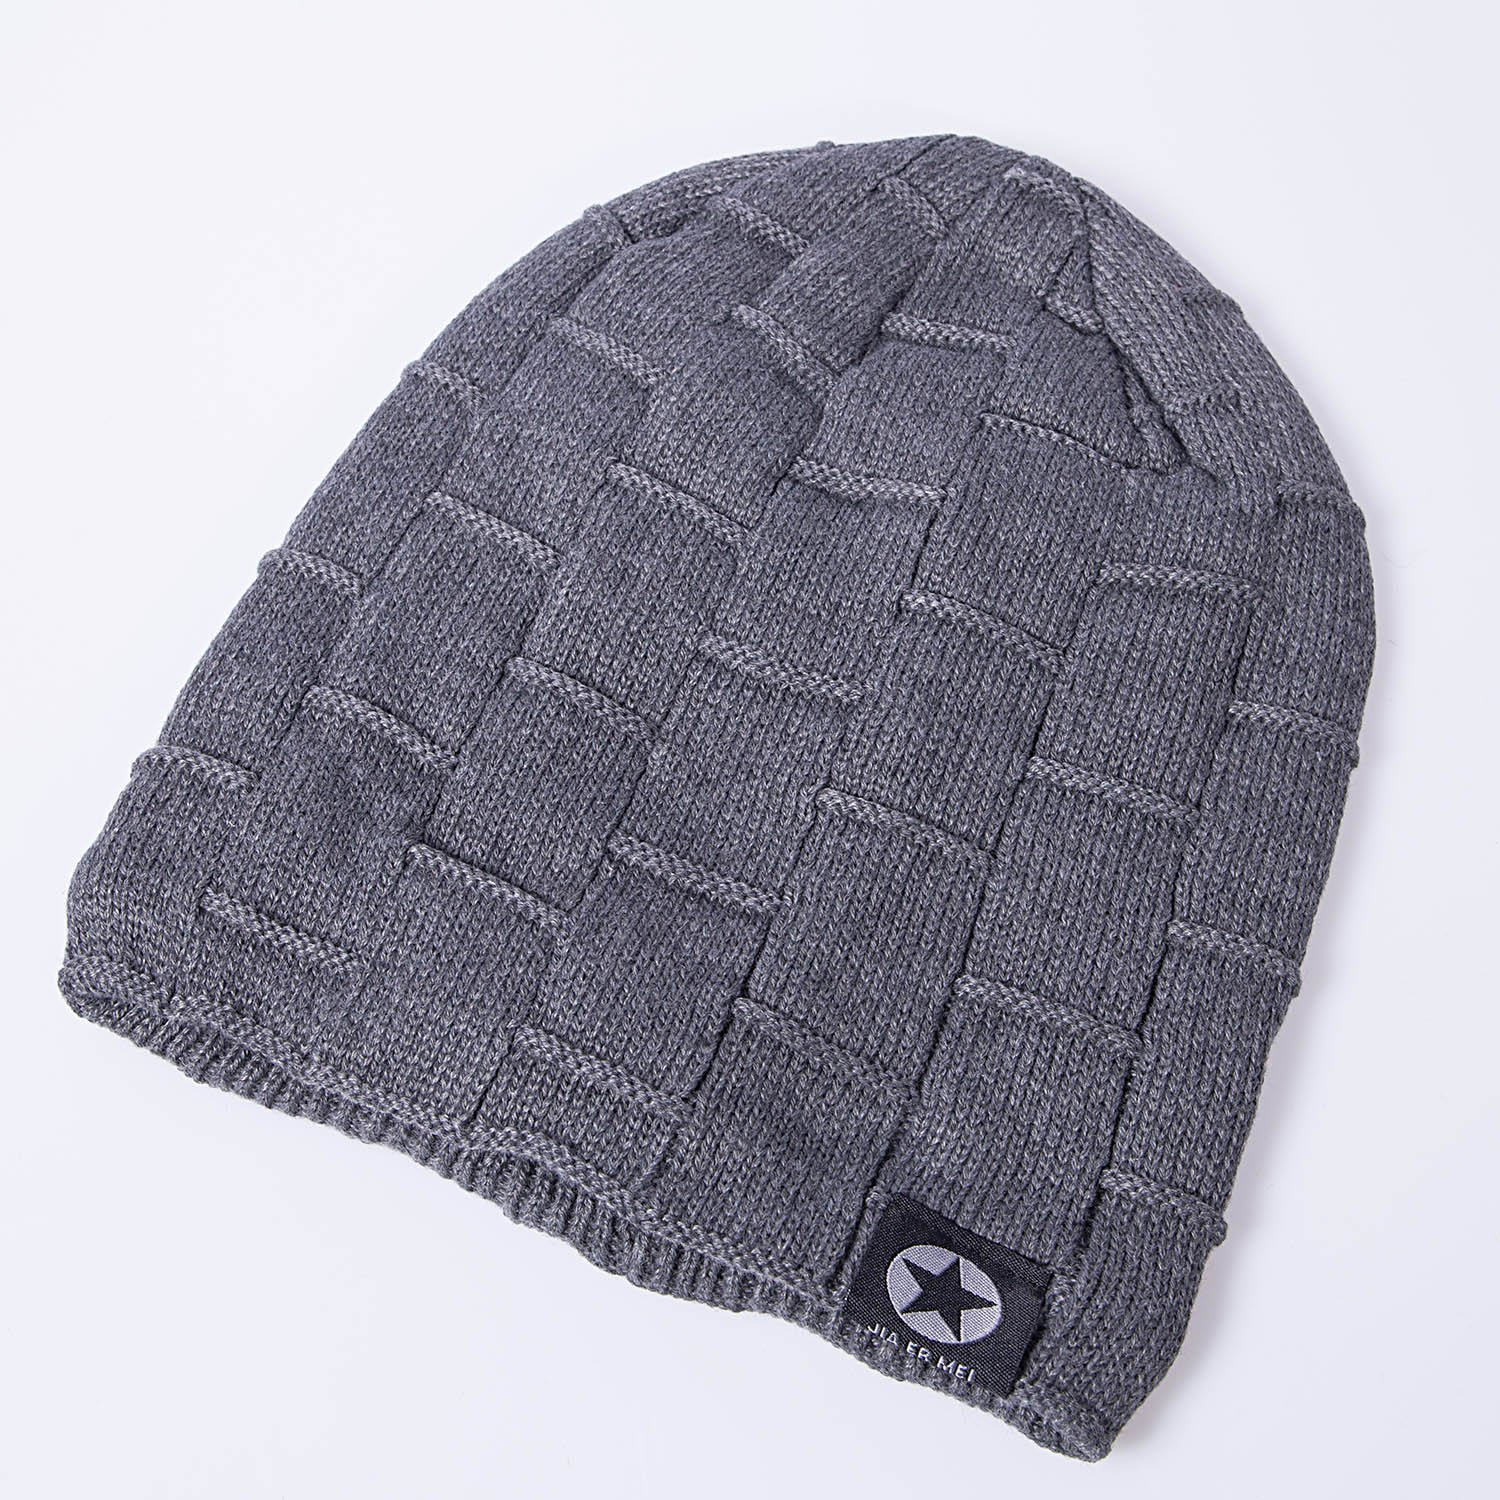 a9b0f90185c Senker Beanie Hat Winter Warm Cap Soft Thick Slouchy Knit Hats for Men and  Women